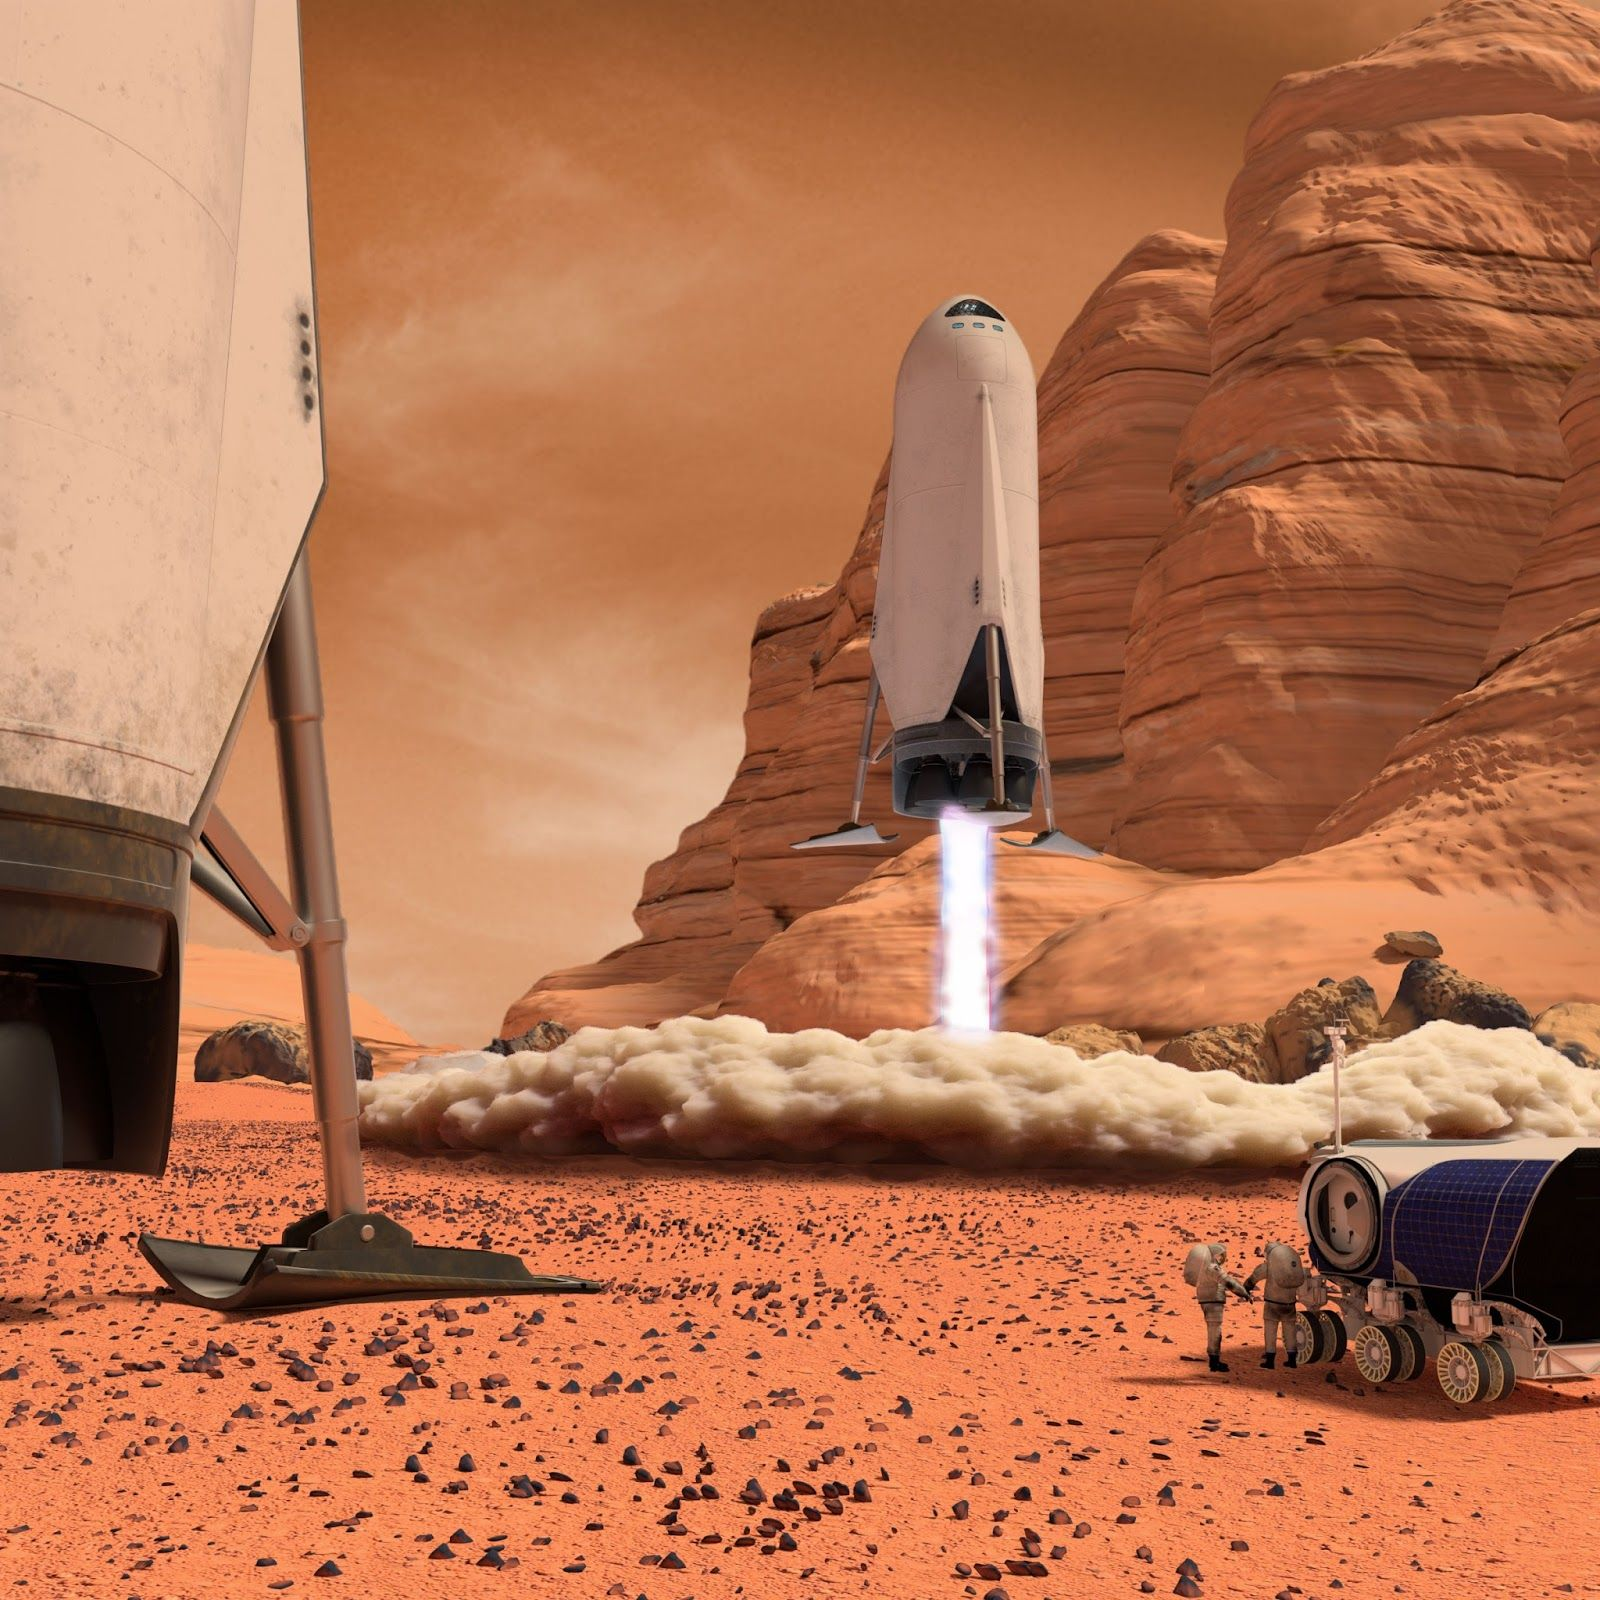 SpaceX downscaled ITS spaceship landing on Mars | Futurist ...